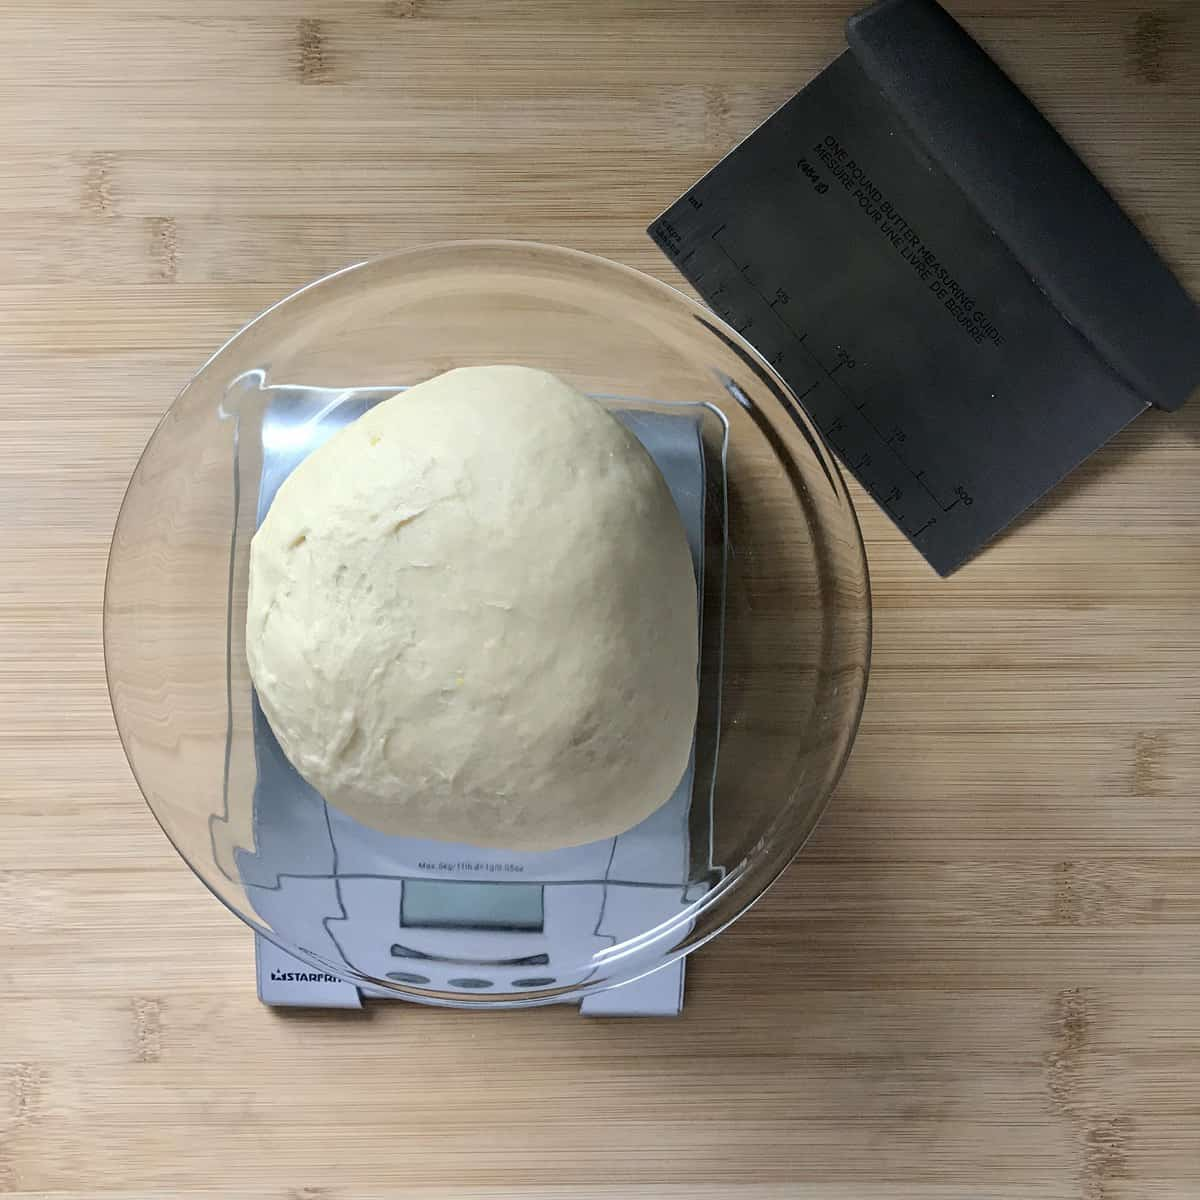 A ball of yeast dough being weighed on a scale.